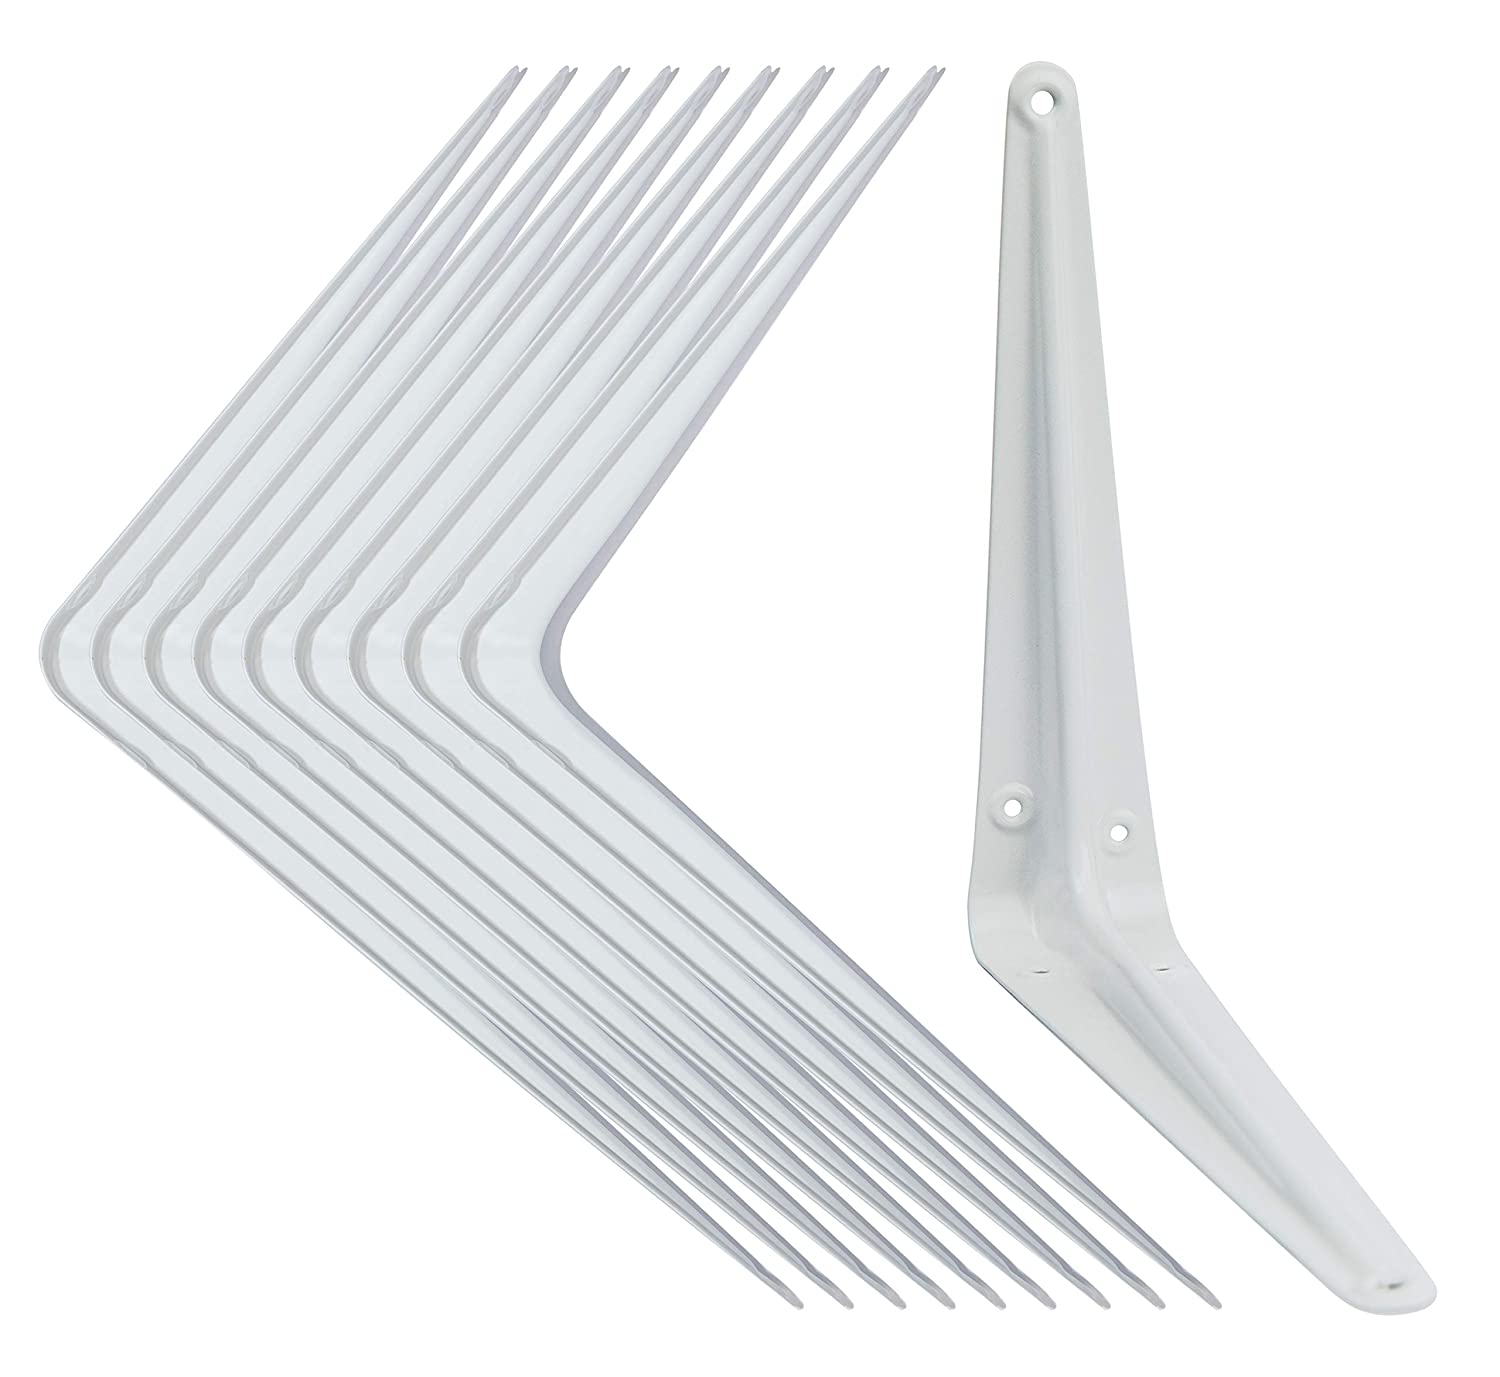 Shelf Brackets White 8 x 10 inch Pack of 10 Wall L-Bracket Supports for Hanging DIY Shelves Metal Steel Heavy Duty Strength 52lbs